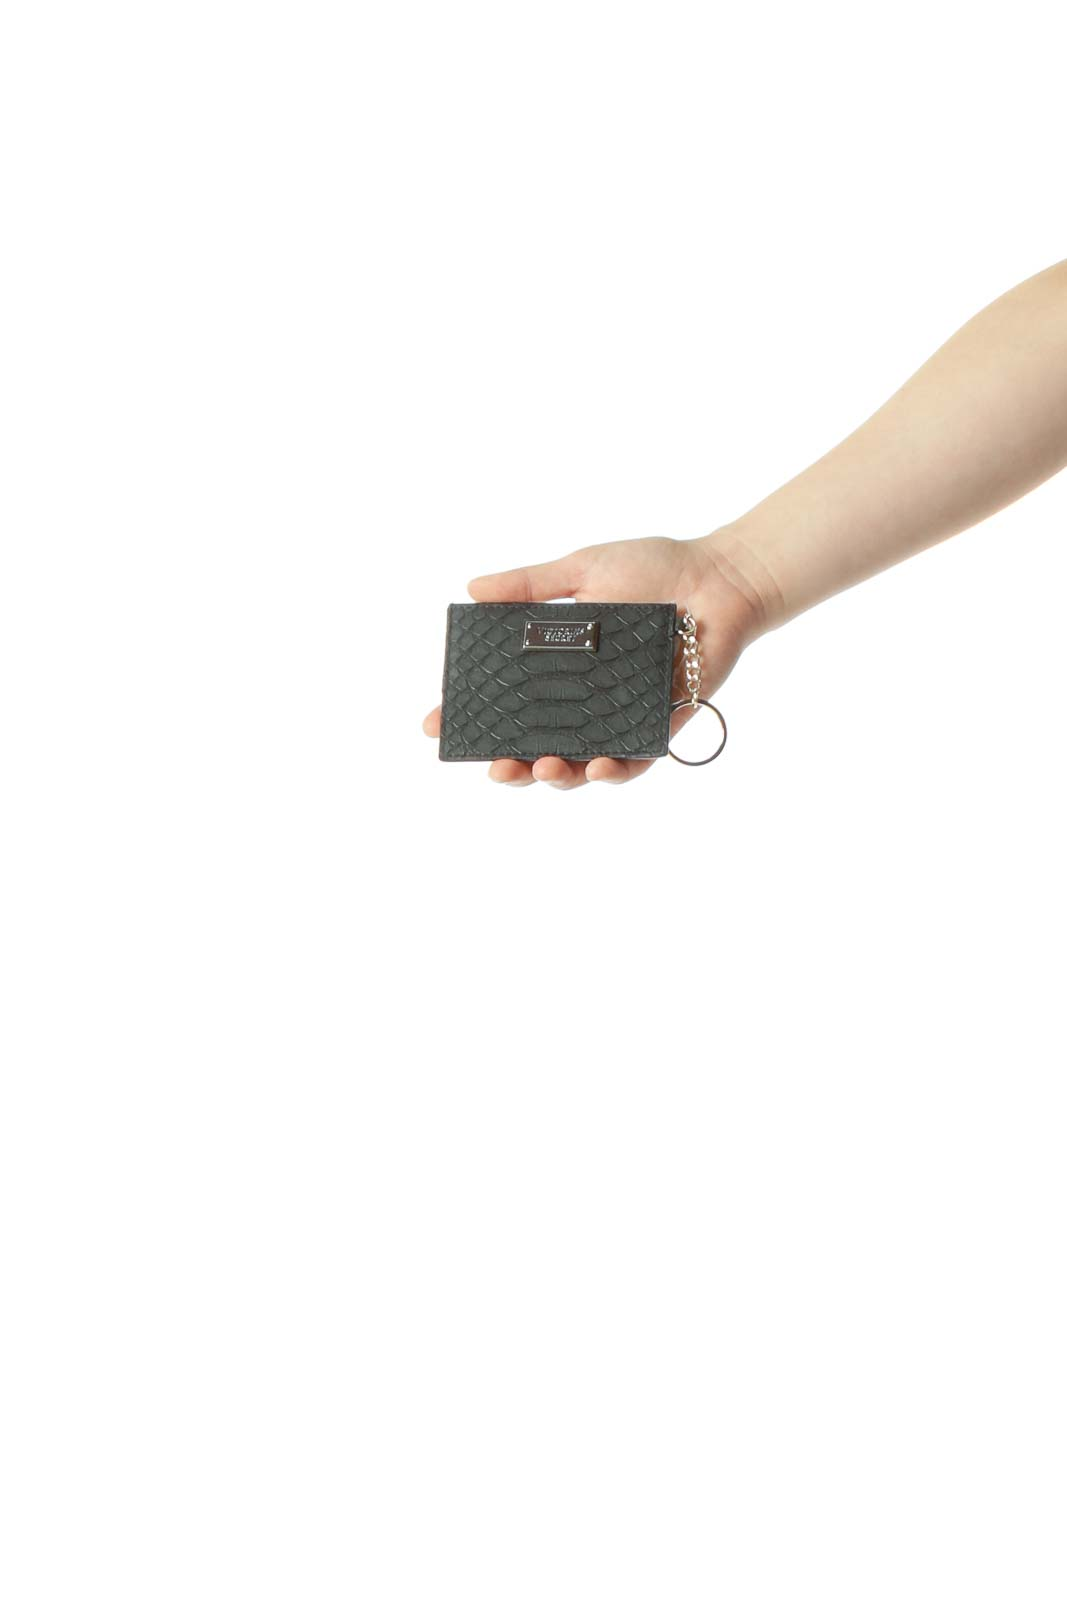 Black Crocodile Texture Card Holder with Gold Keychain